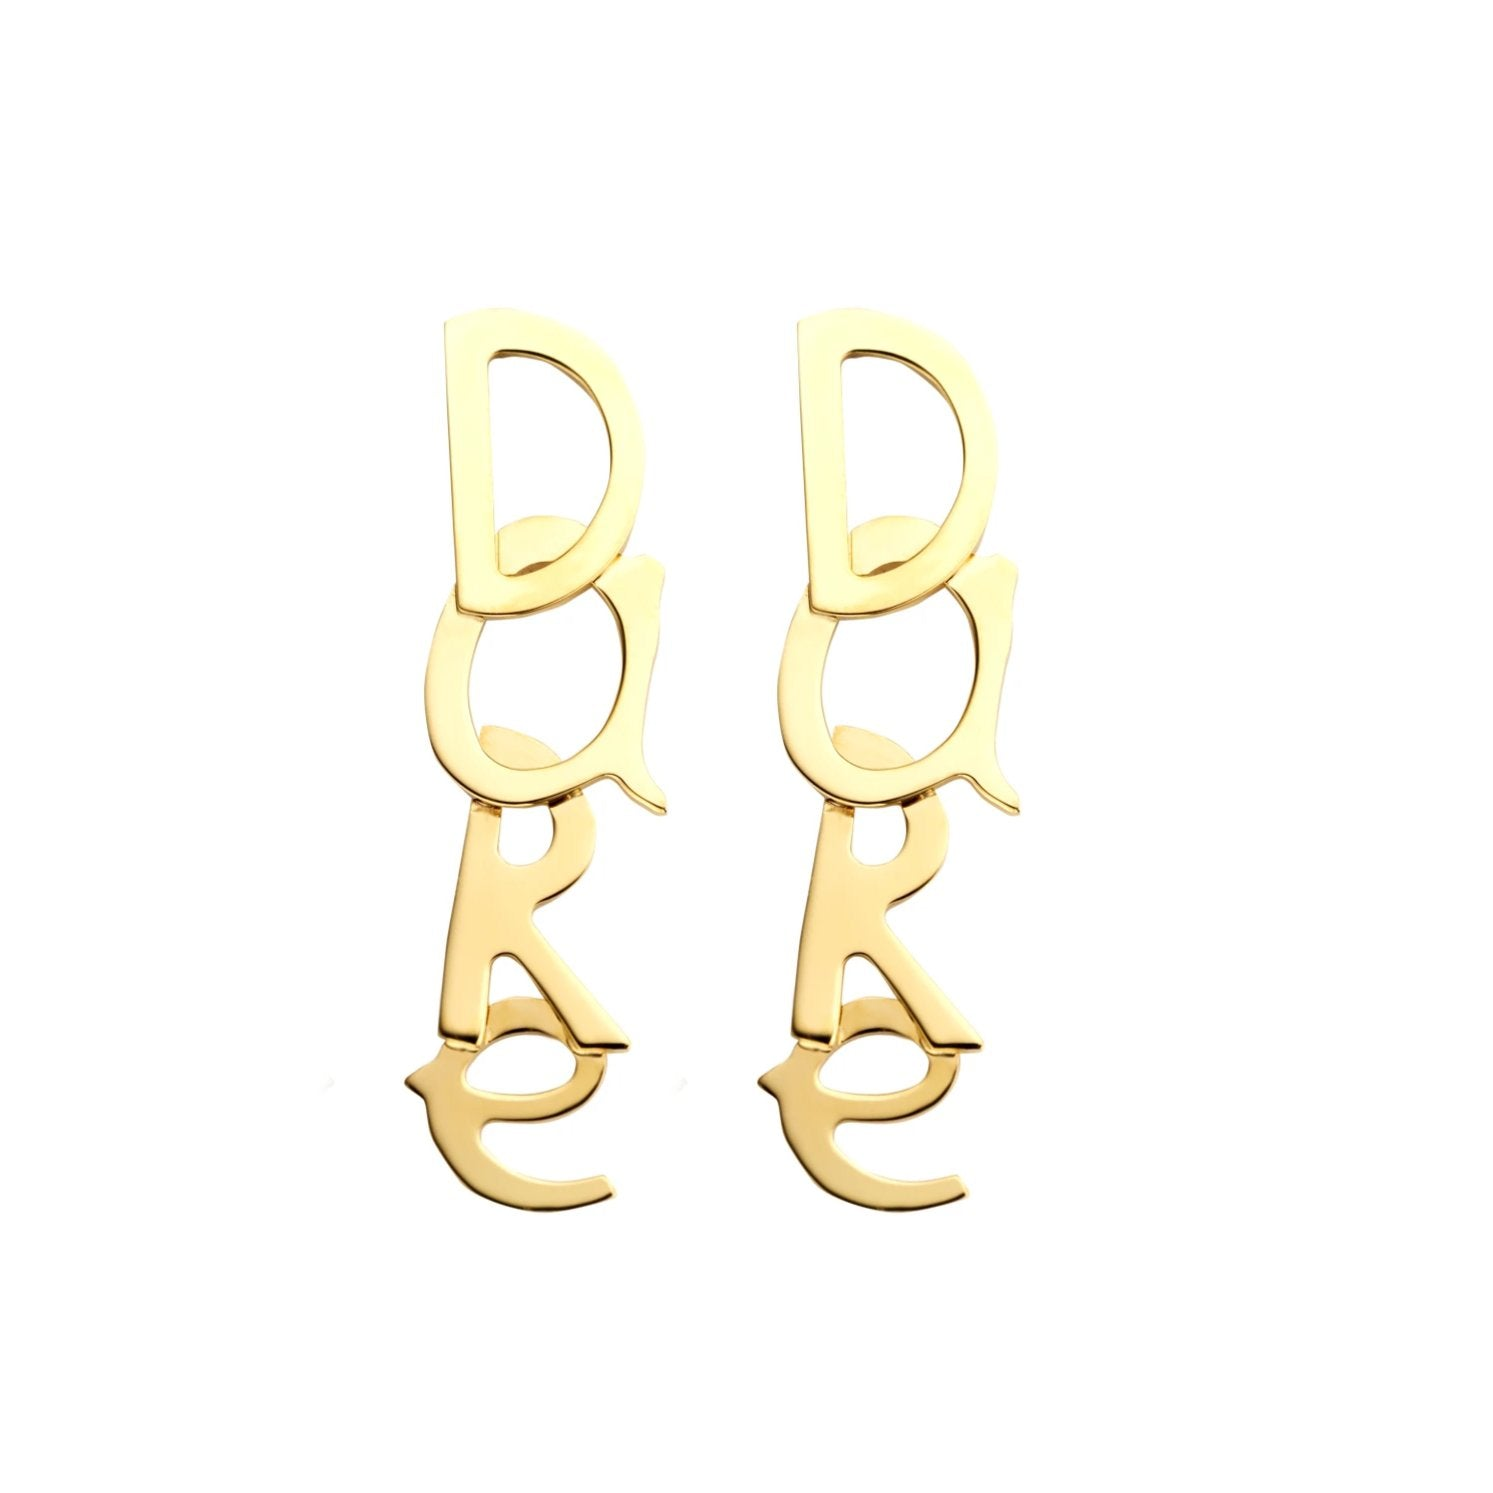 Dare gold earrings - Souvenirs de Pomme